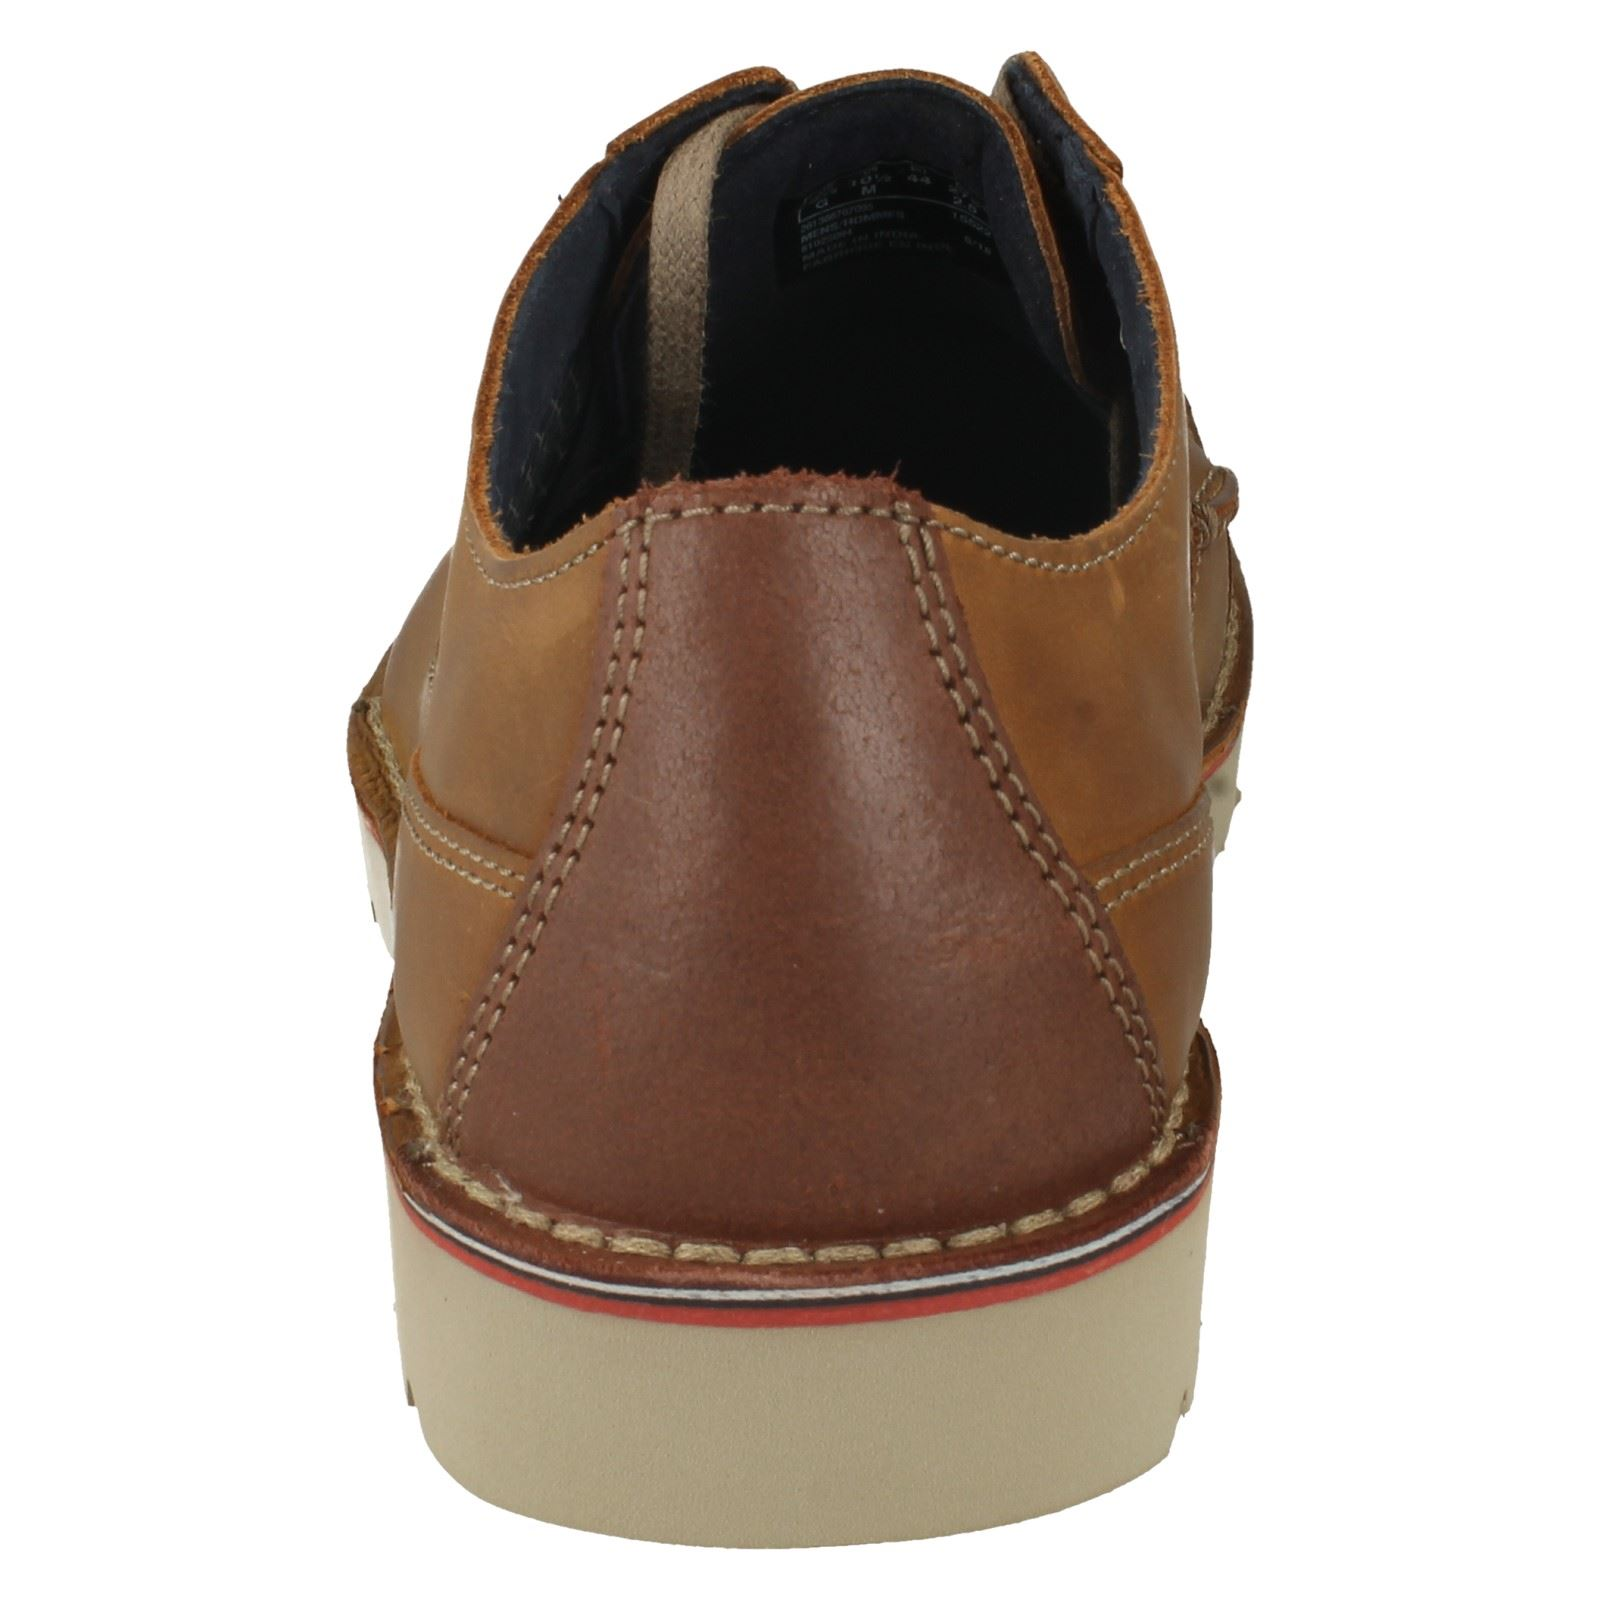 Uomo Clarks Leder Casual Schuhes Cushion Soft Lace Up Schuhes Casual The Style - Vargo Plain 689437